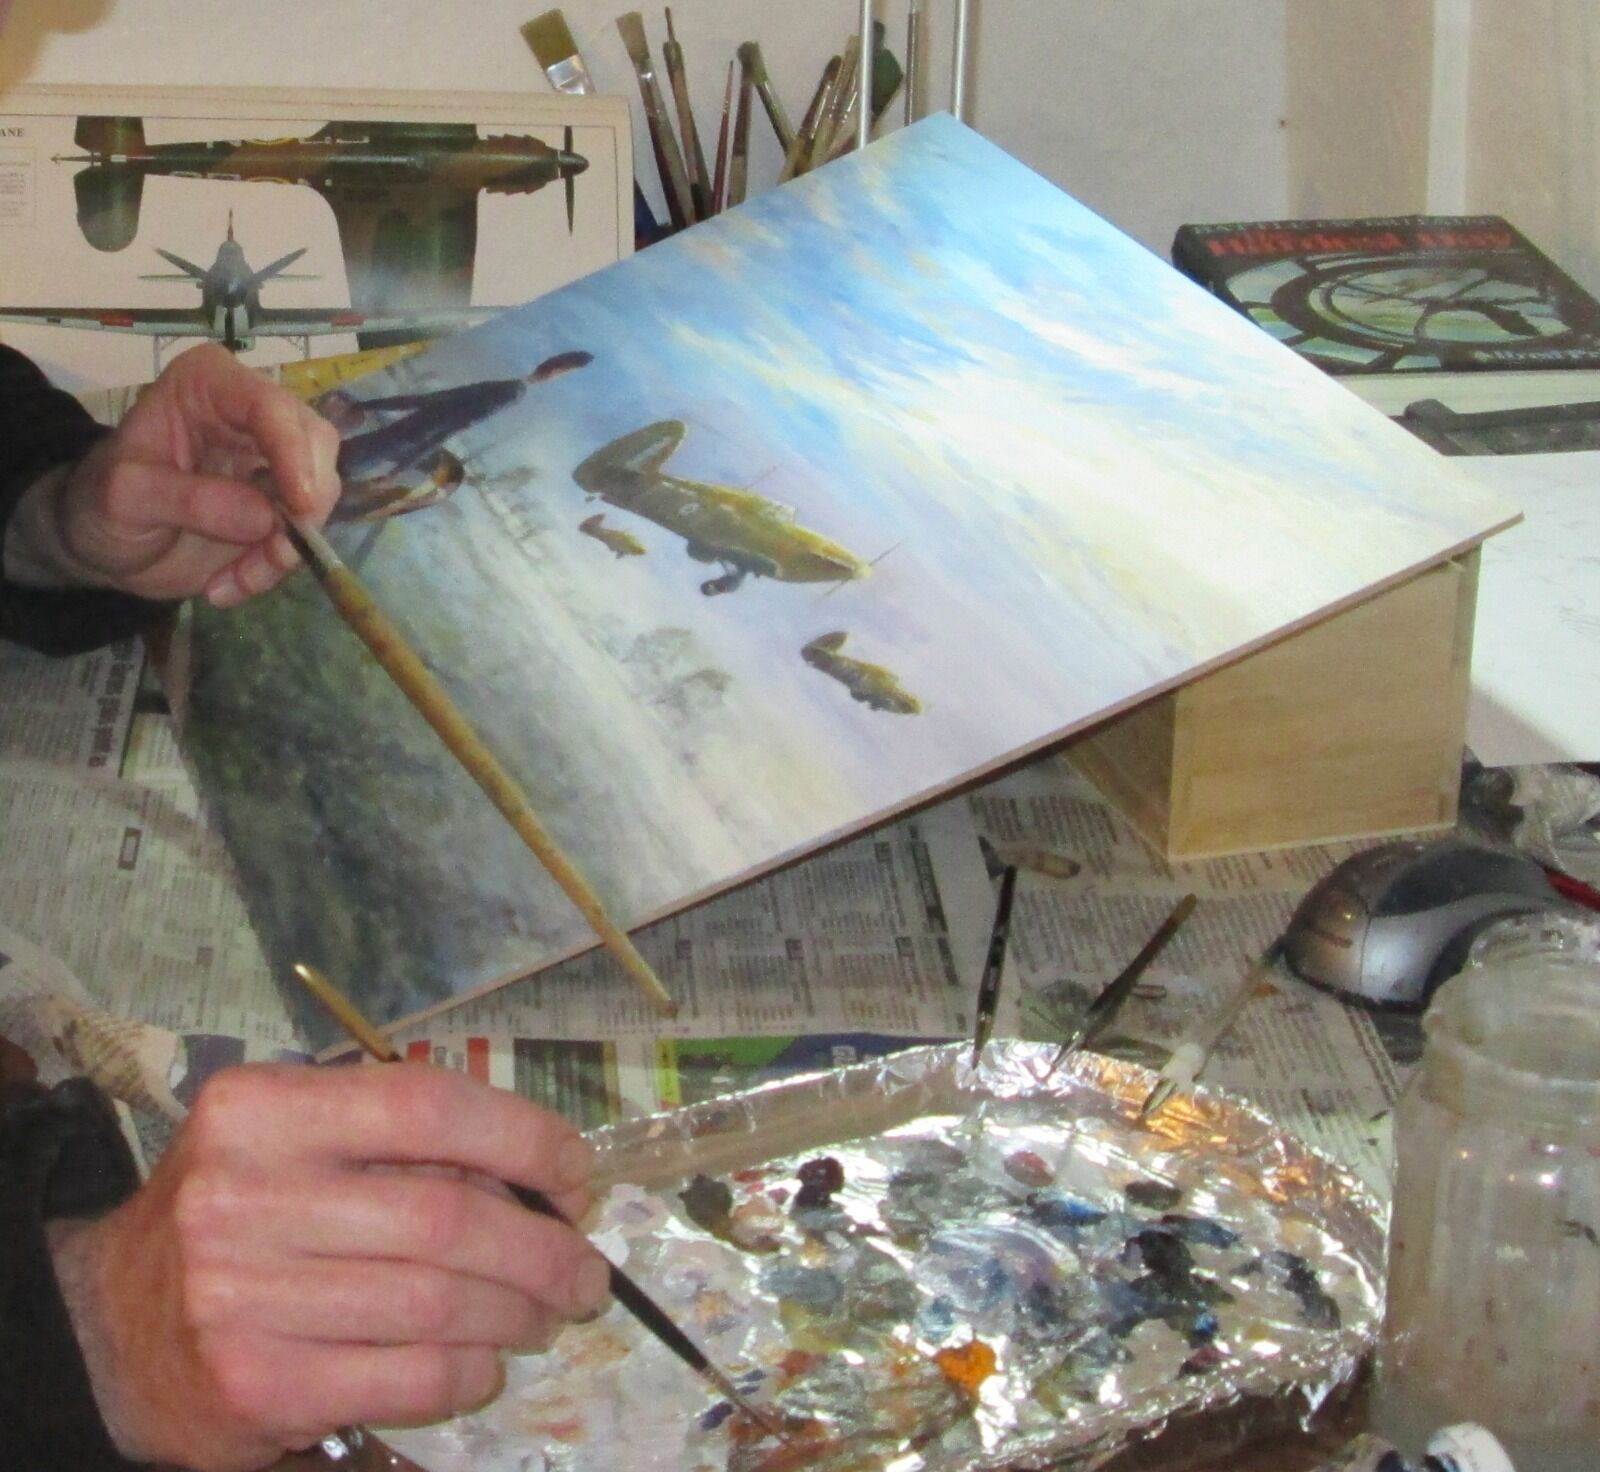 My improvised mahlstick in use on my Hurricane painting featuring Sgt. A. G. Girdwood's aircraft.